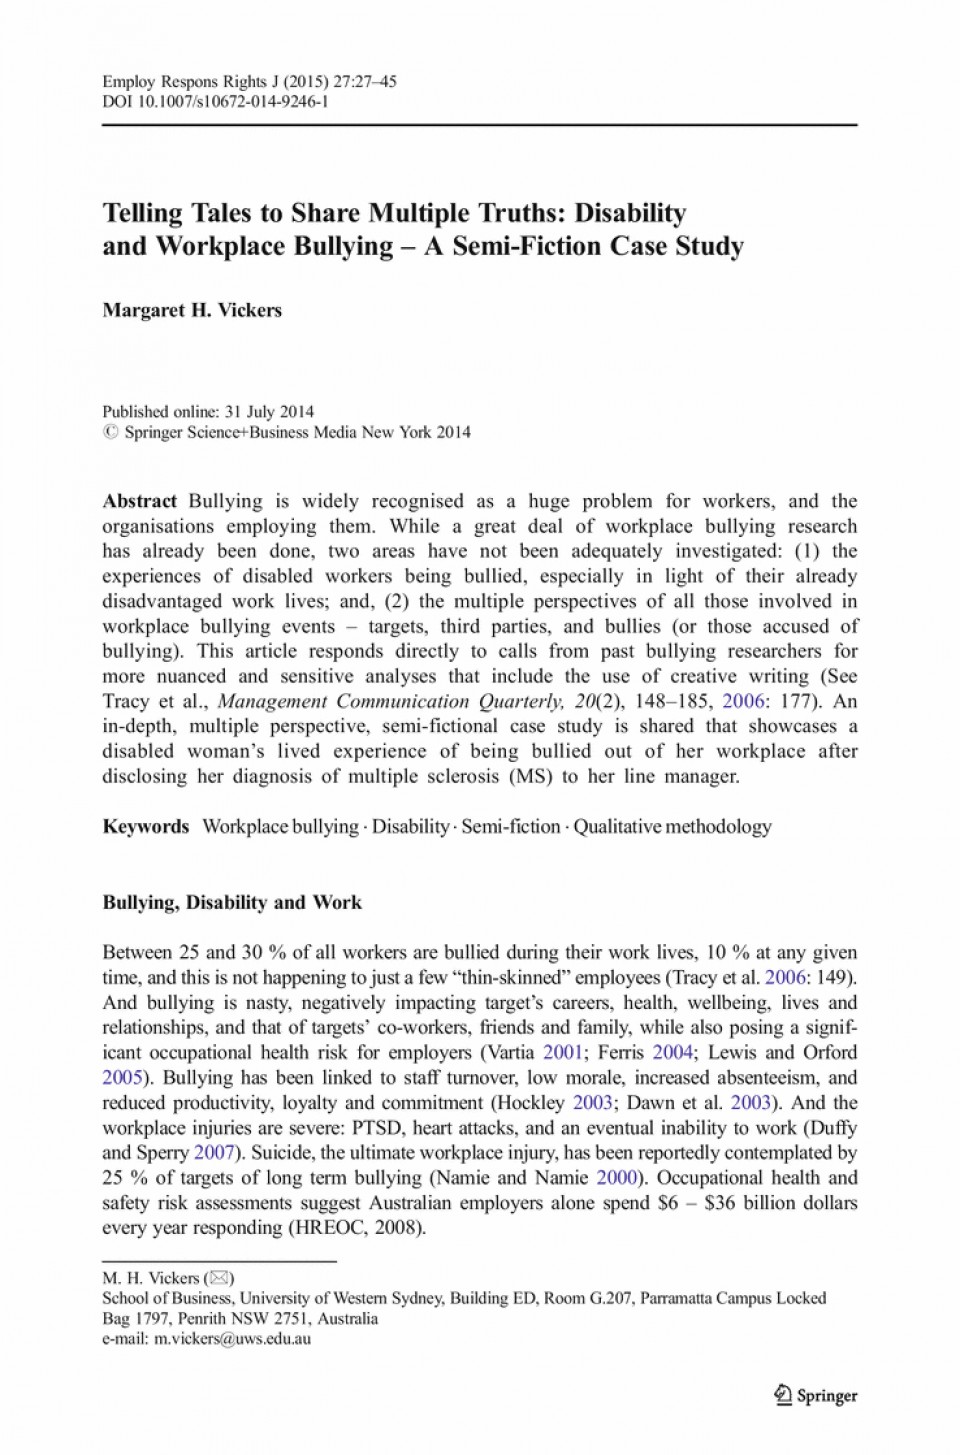 004 Bullying Research Paper Pdf Narrative Essay Buy Original Conclusion To L Imposing Short About Quantitative Effects Of 960